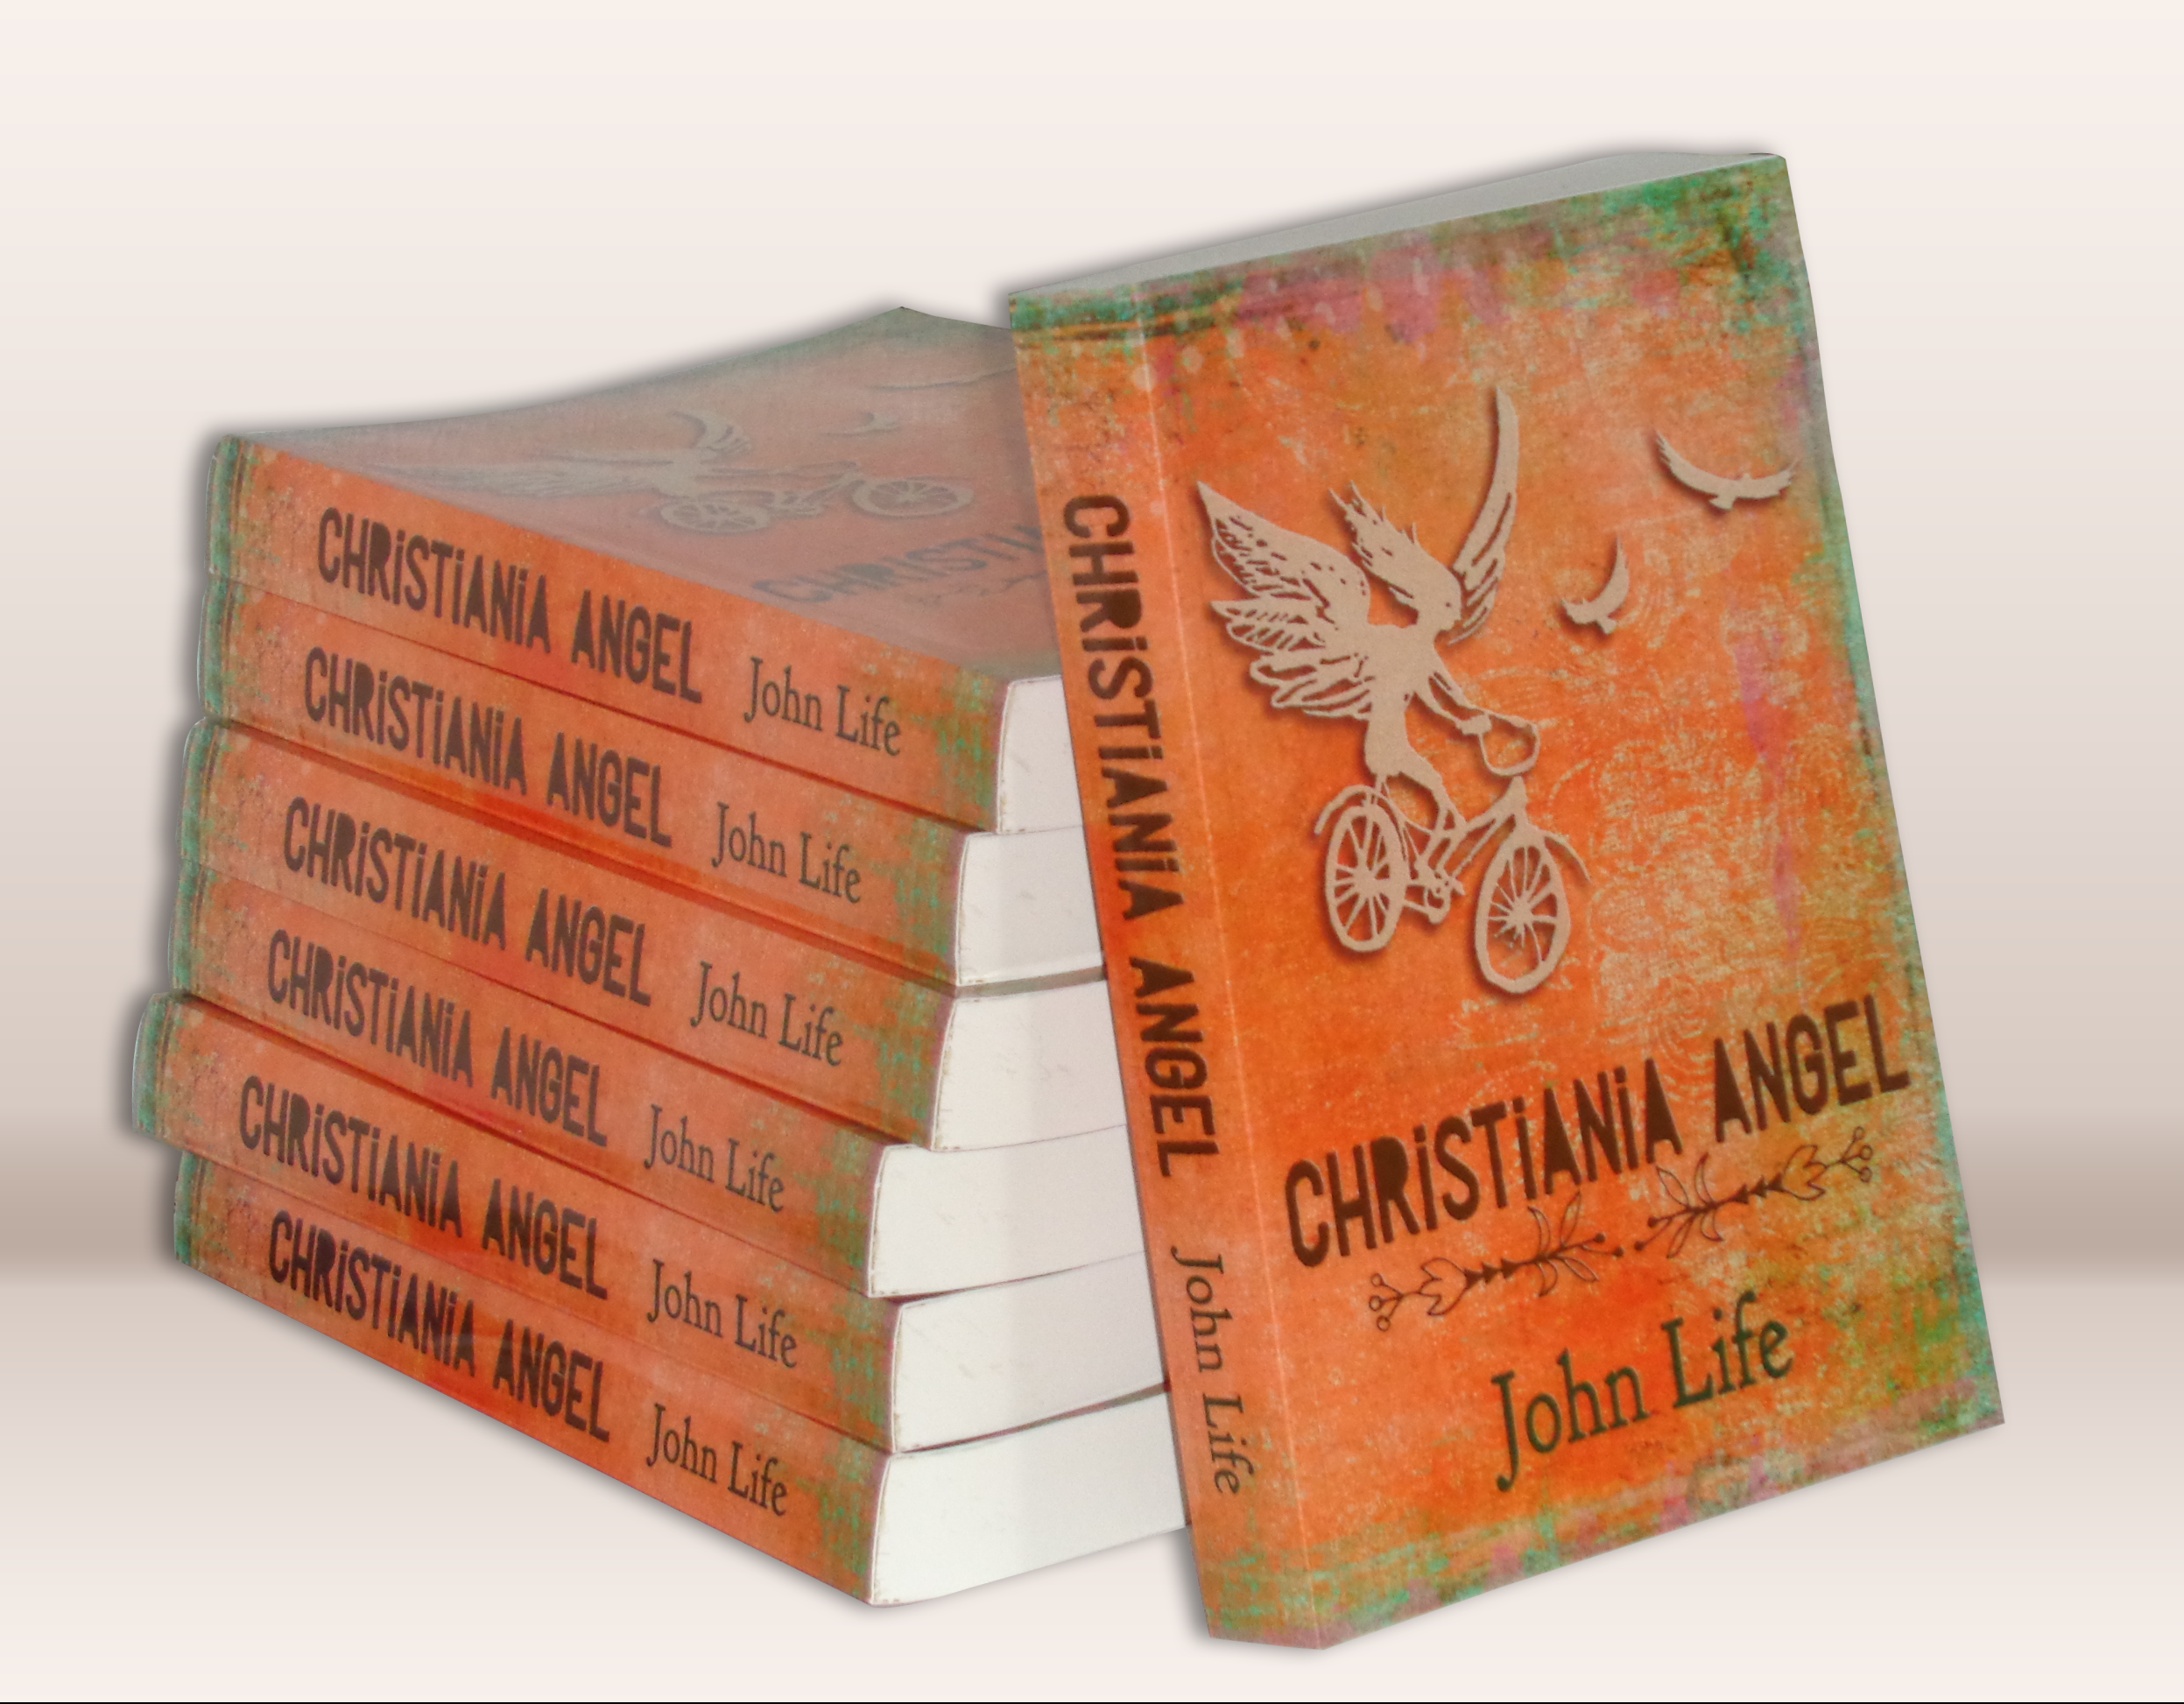 Christiania Angel book jacket design by Tiger-Fruit